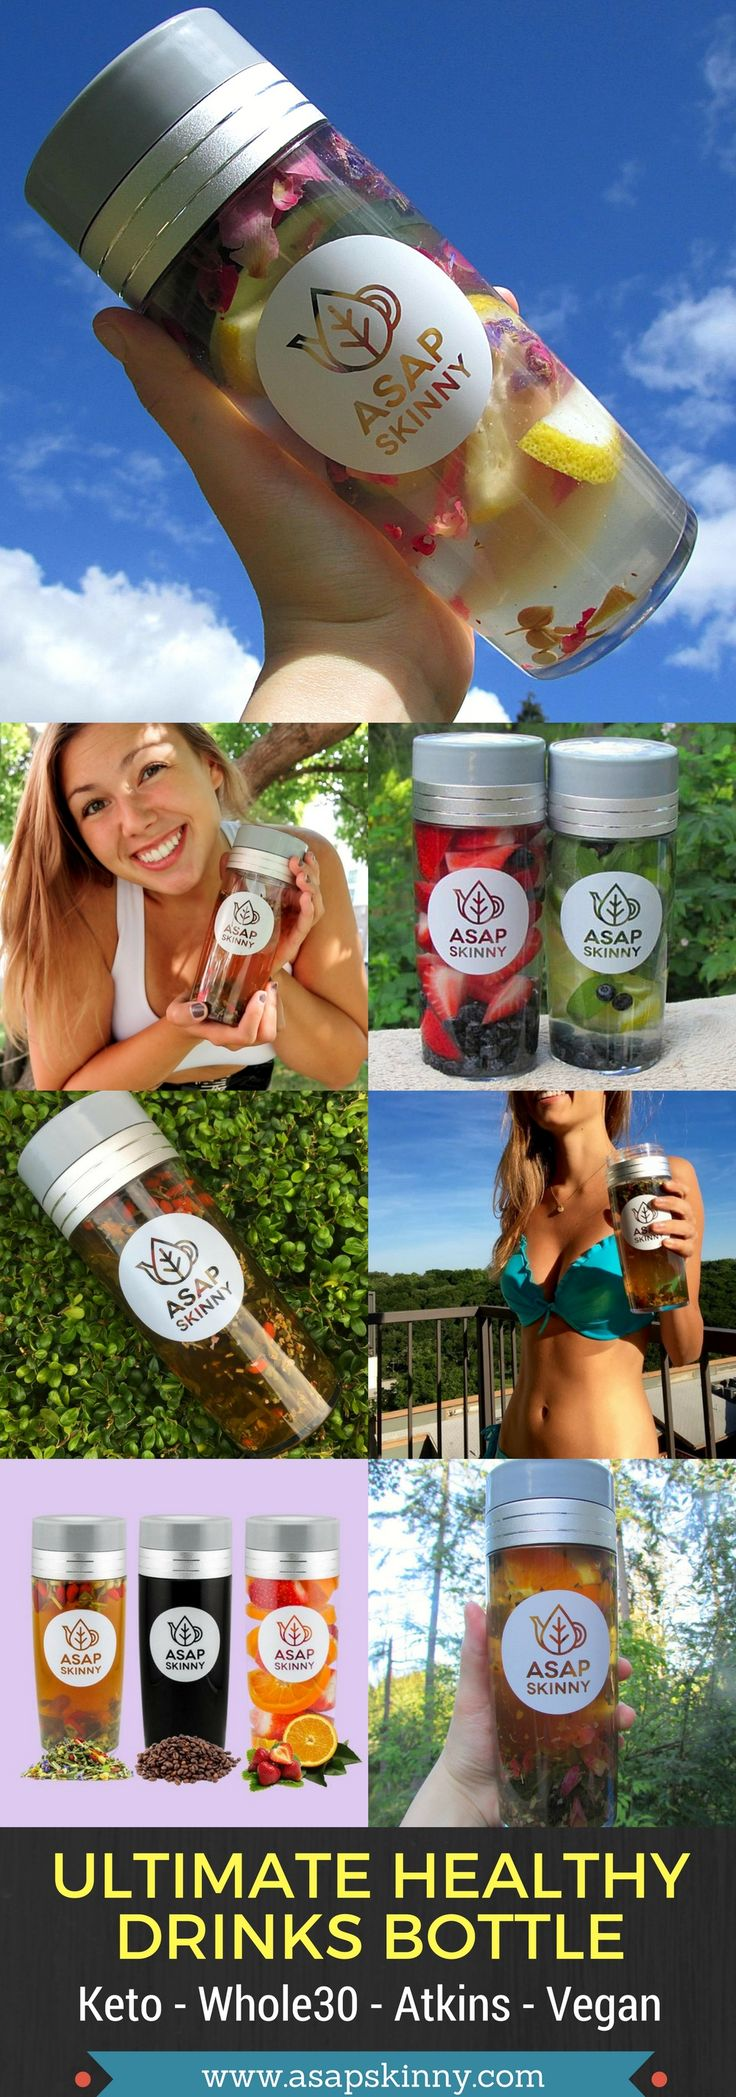 Finally Back In Stock! Are You Always On-The-Go? Keep Yourself Healthy & Hydrated With This Awesome Travel Healthy Drinks Bottle For Infused Fruit Water Drinks, Coffee, Herbal Tea, Green Tea, Oolong Tea, Loose Leaf Tea And Much More! Kickstart Your New Healthy Lifestyle With ASAPSKINNY Starting TODAY. You Will Also Receive A FREE Removable Mesh Strainer/Steeper With Your Purchase! Perfect for Atkins - Keto - Whole30 - Vegan Lovers. Selling Out FAST! SHOP NOW ➡➡➡ www.asapskinny.com